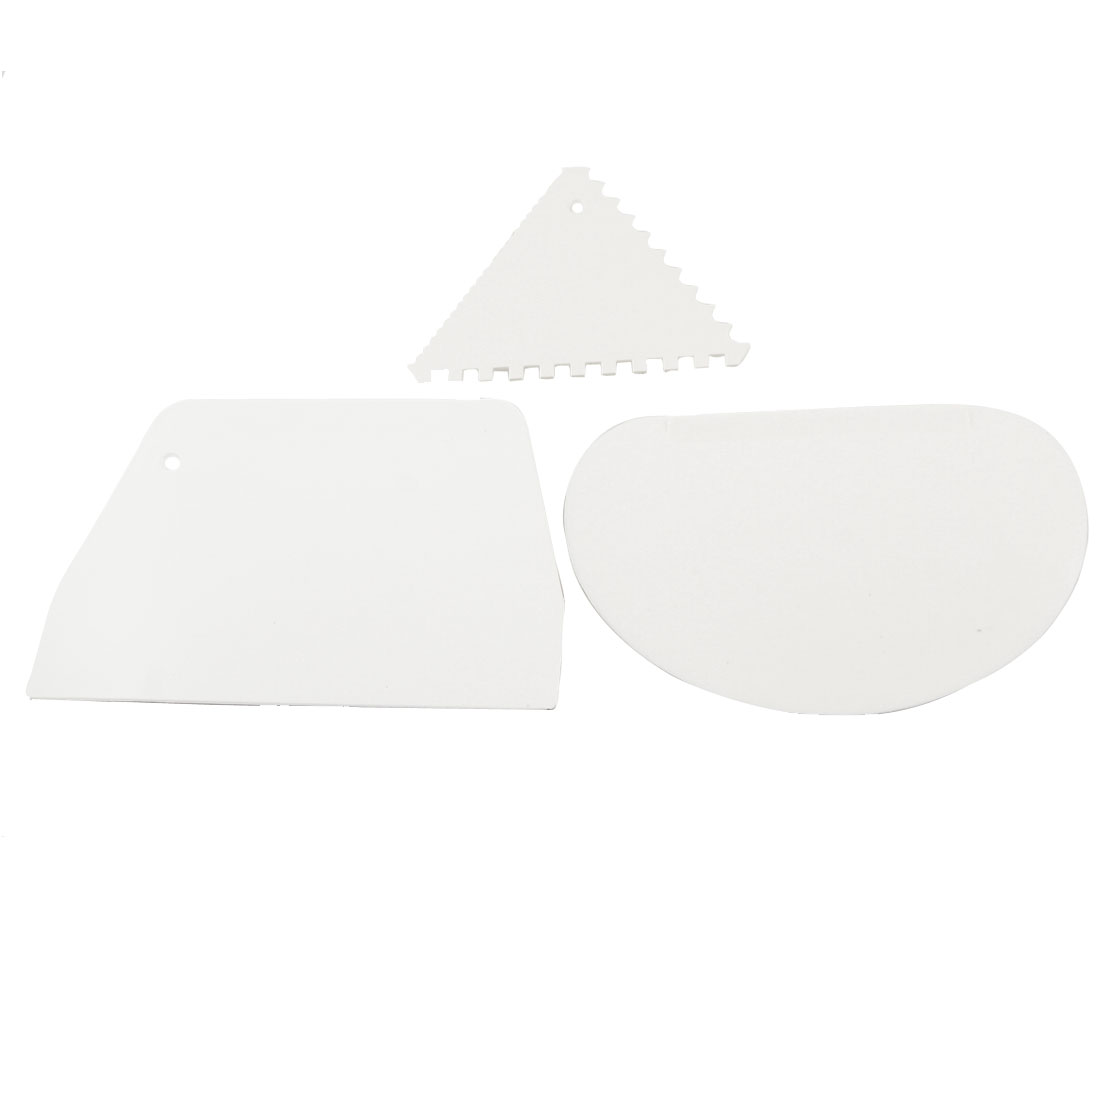 DIY Cake Decorating White Plastic Cutter Scraper Kitchen Tool 3 in 1 Set